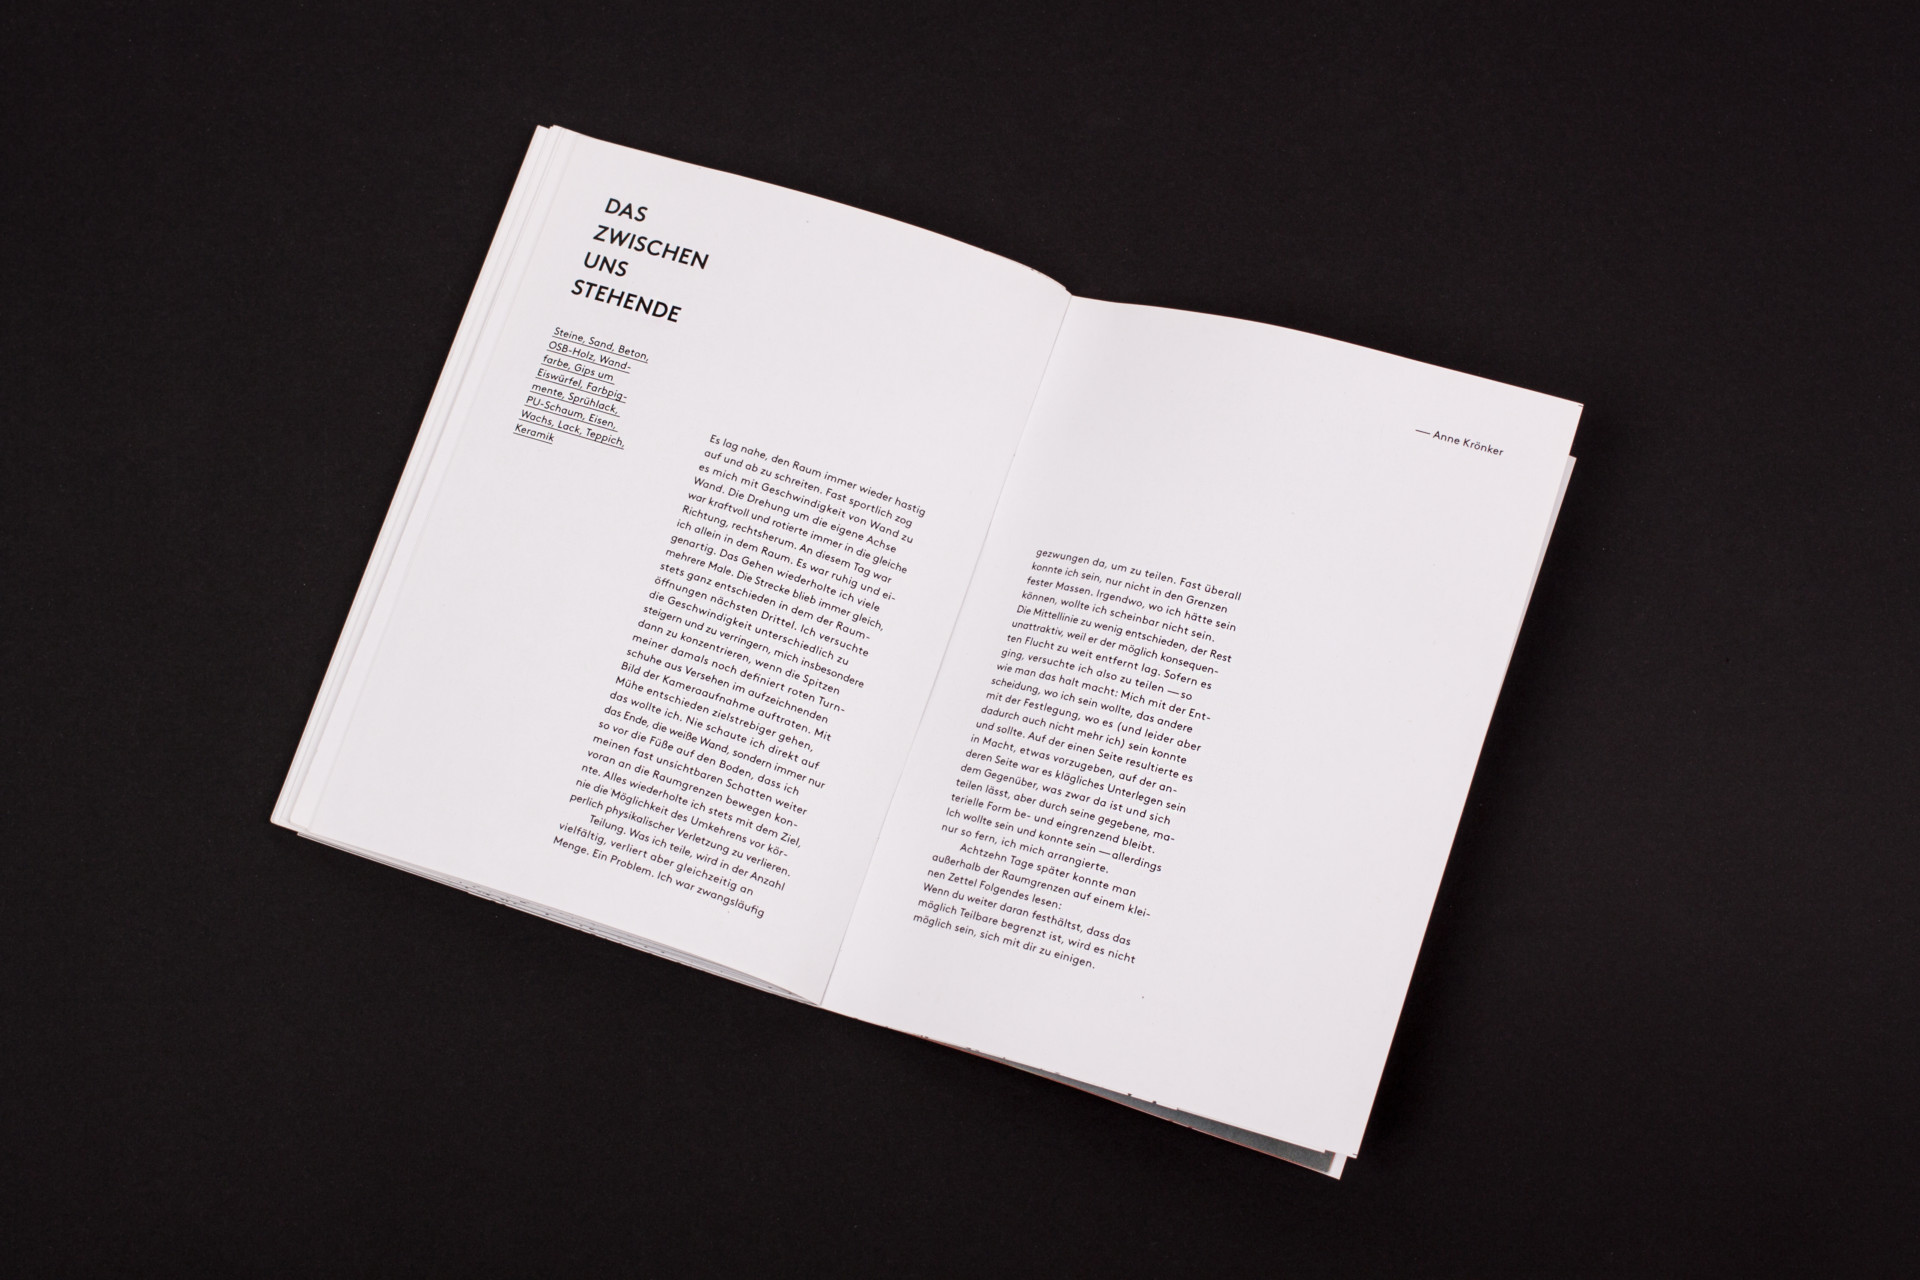 Amélie Graef – Graphicdesign & Art Direction Examenskatalog